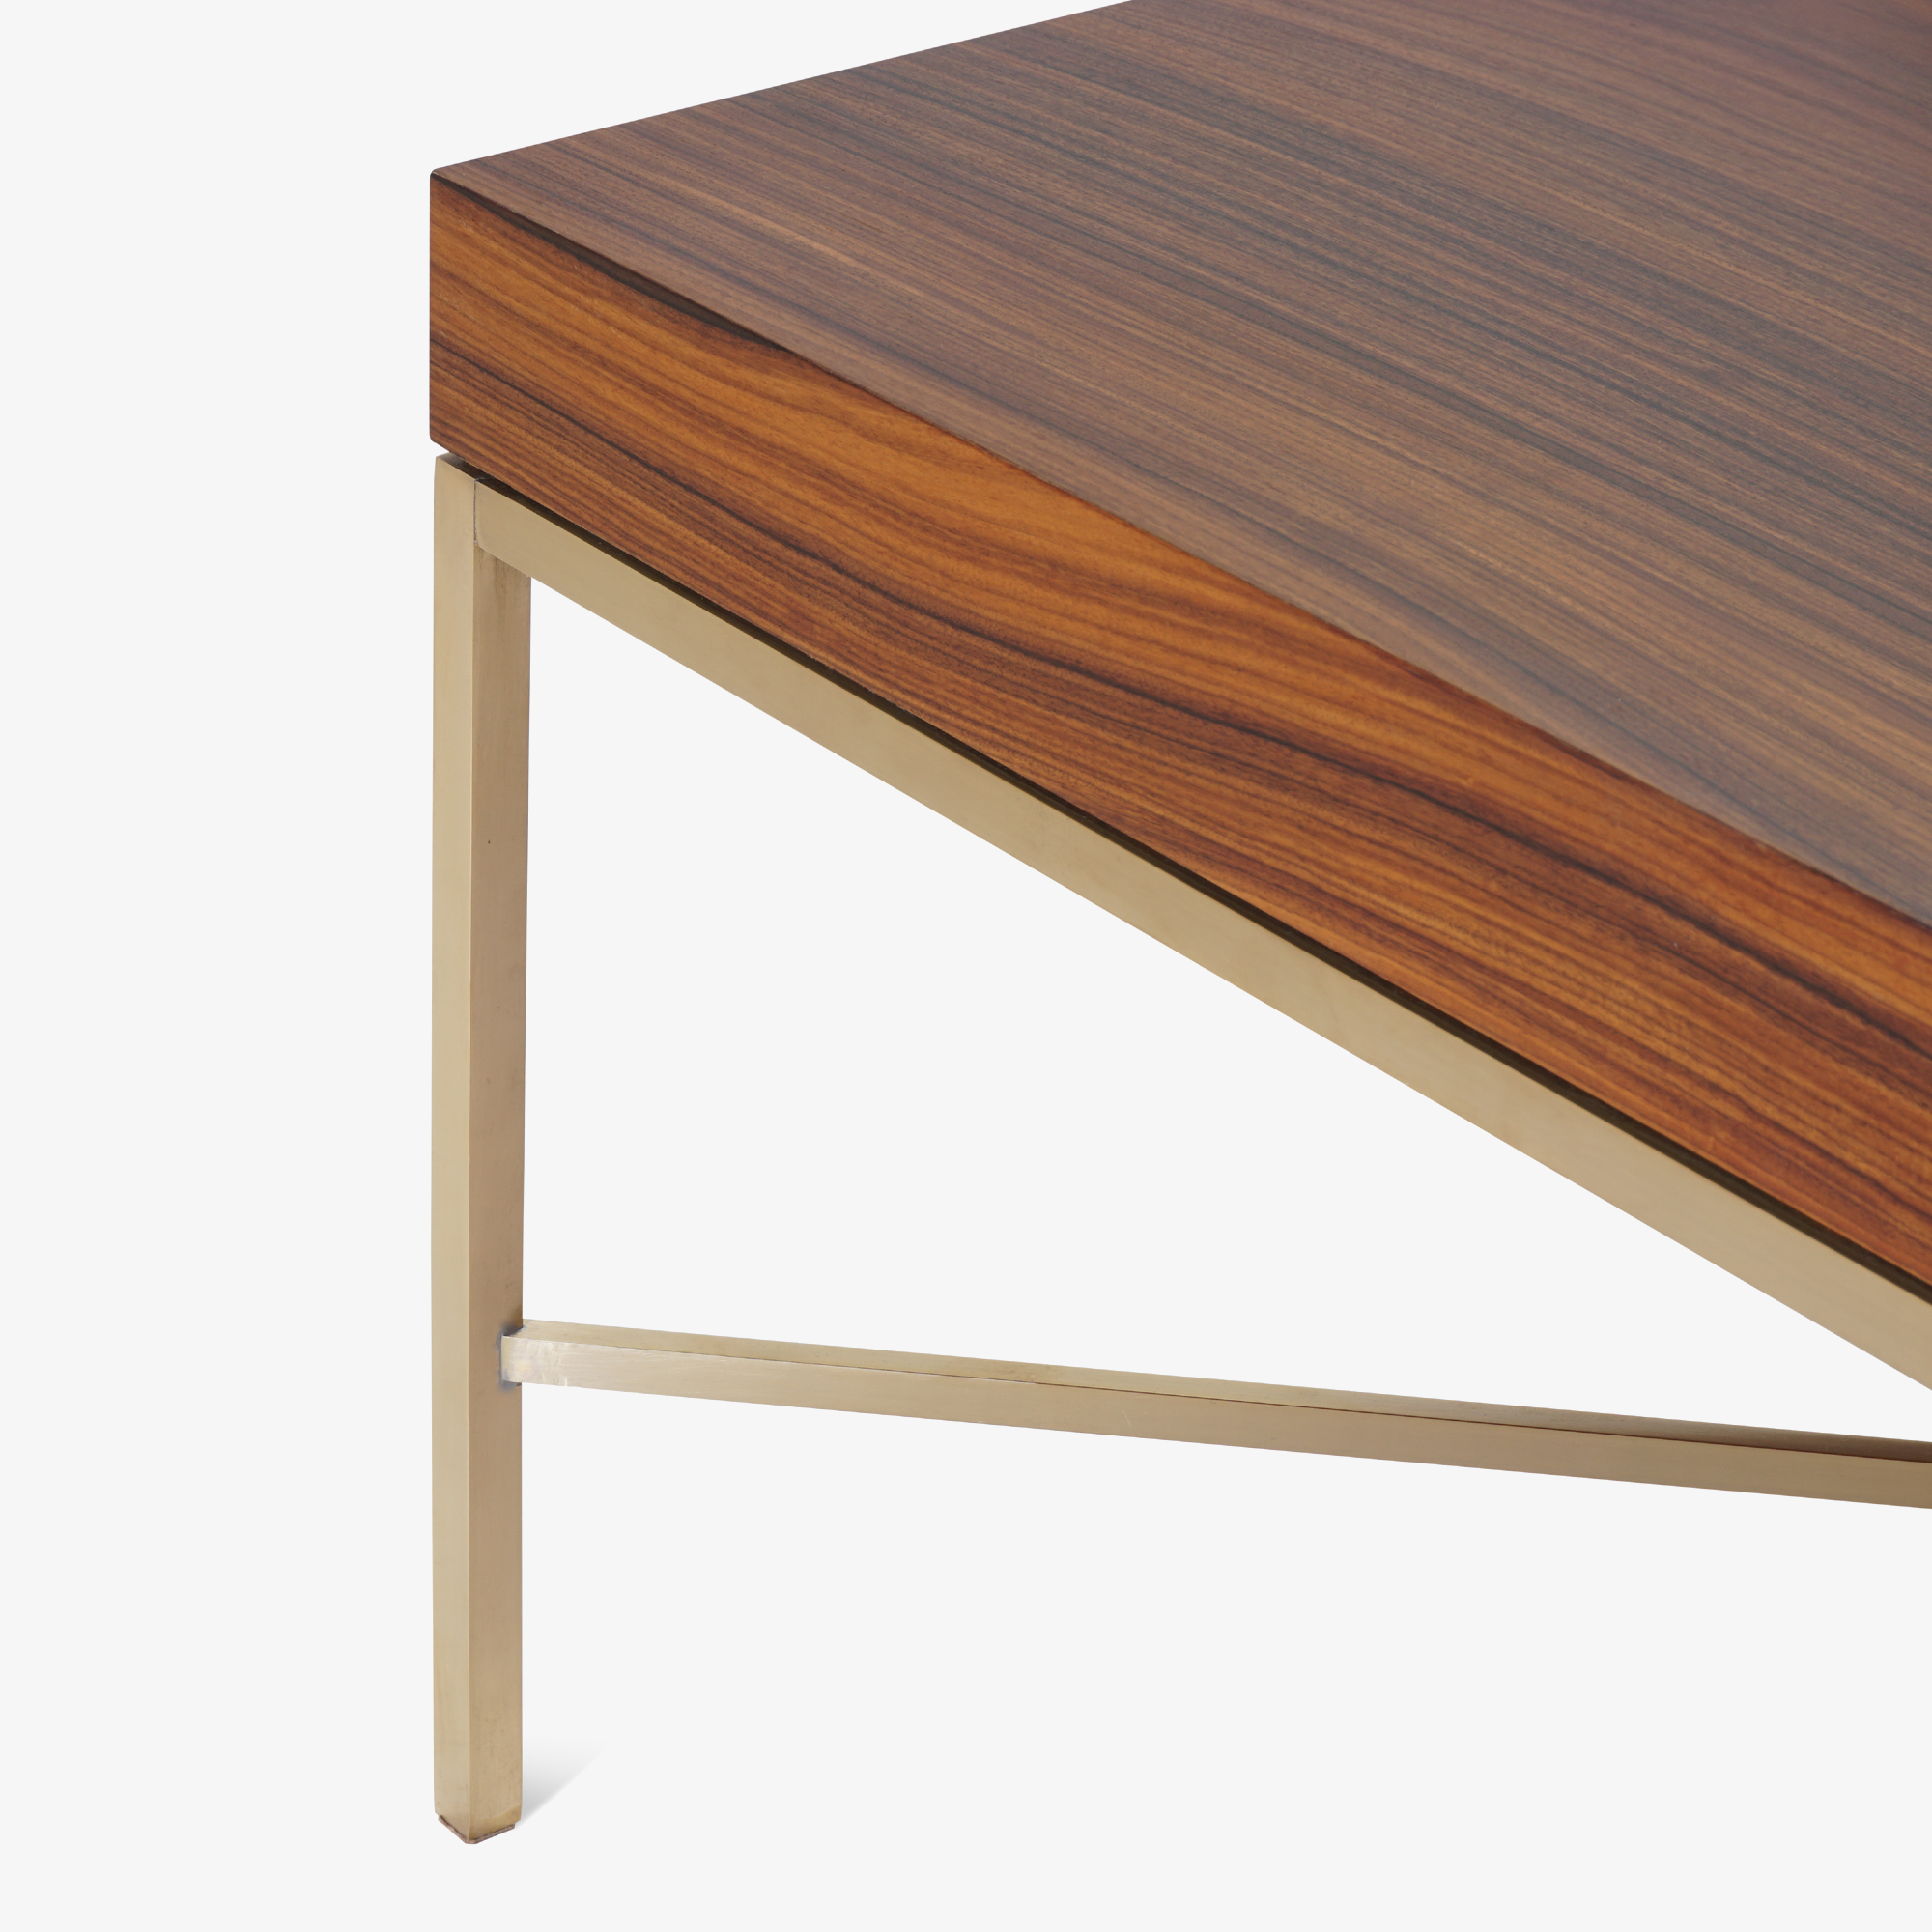 Brass Cross Stretcher Table in Rosewood8.png